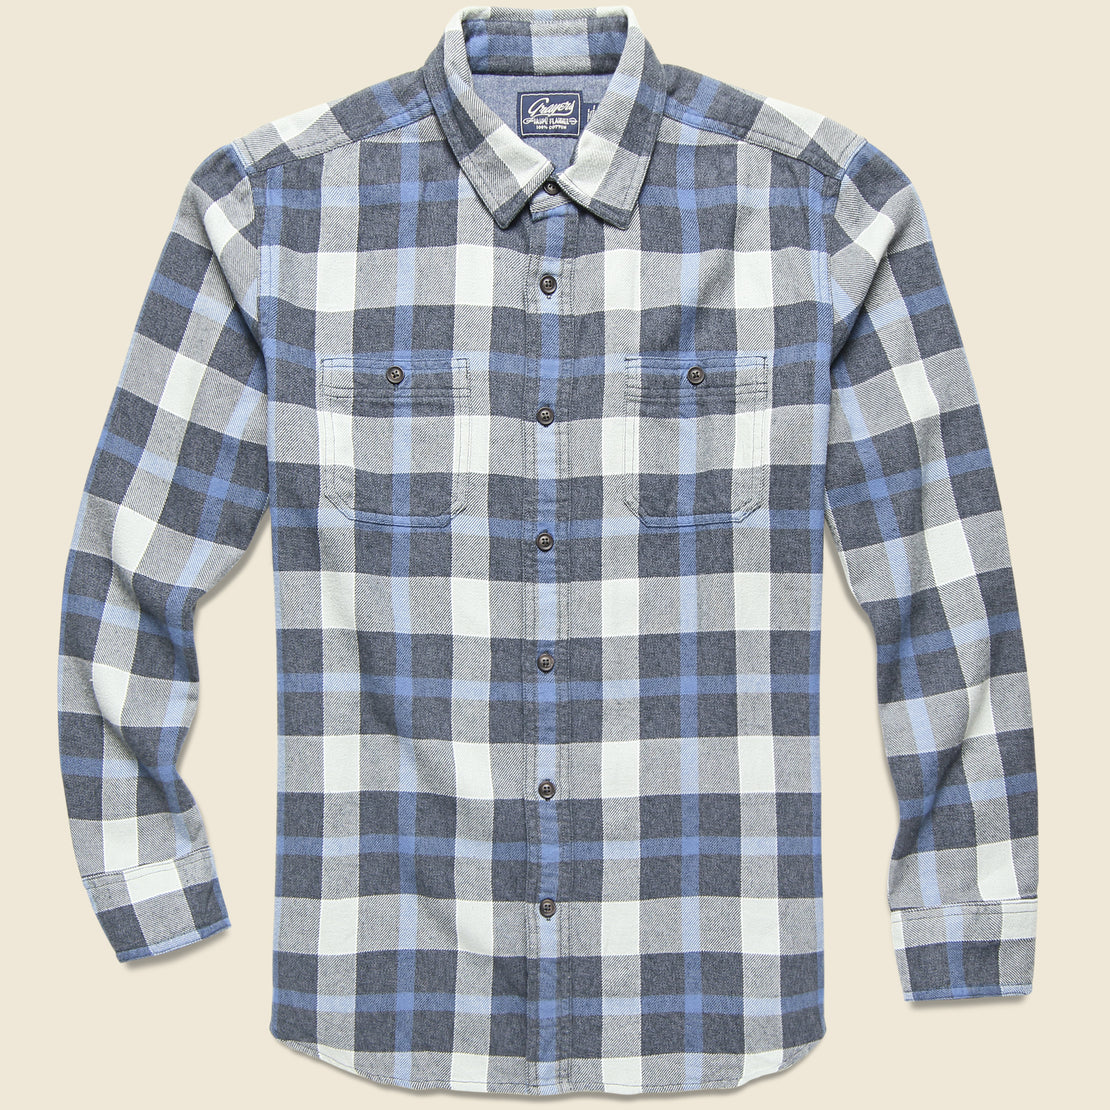 Grayers Keats 3-Ply Jaspe Shirt - Blue Plaid